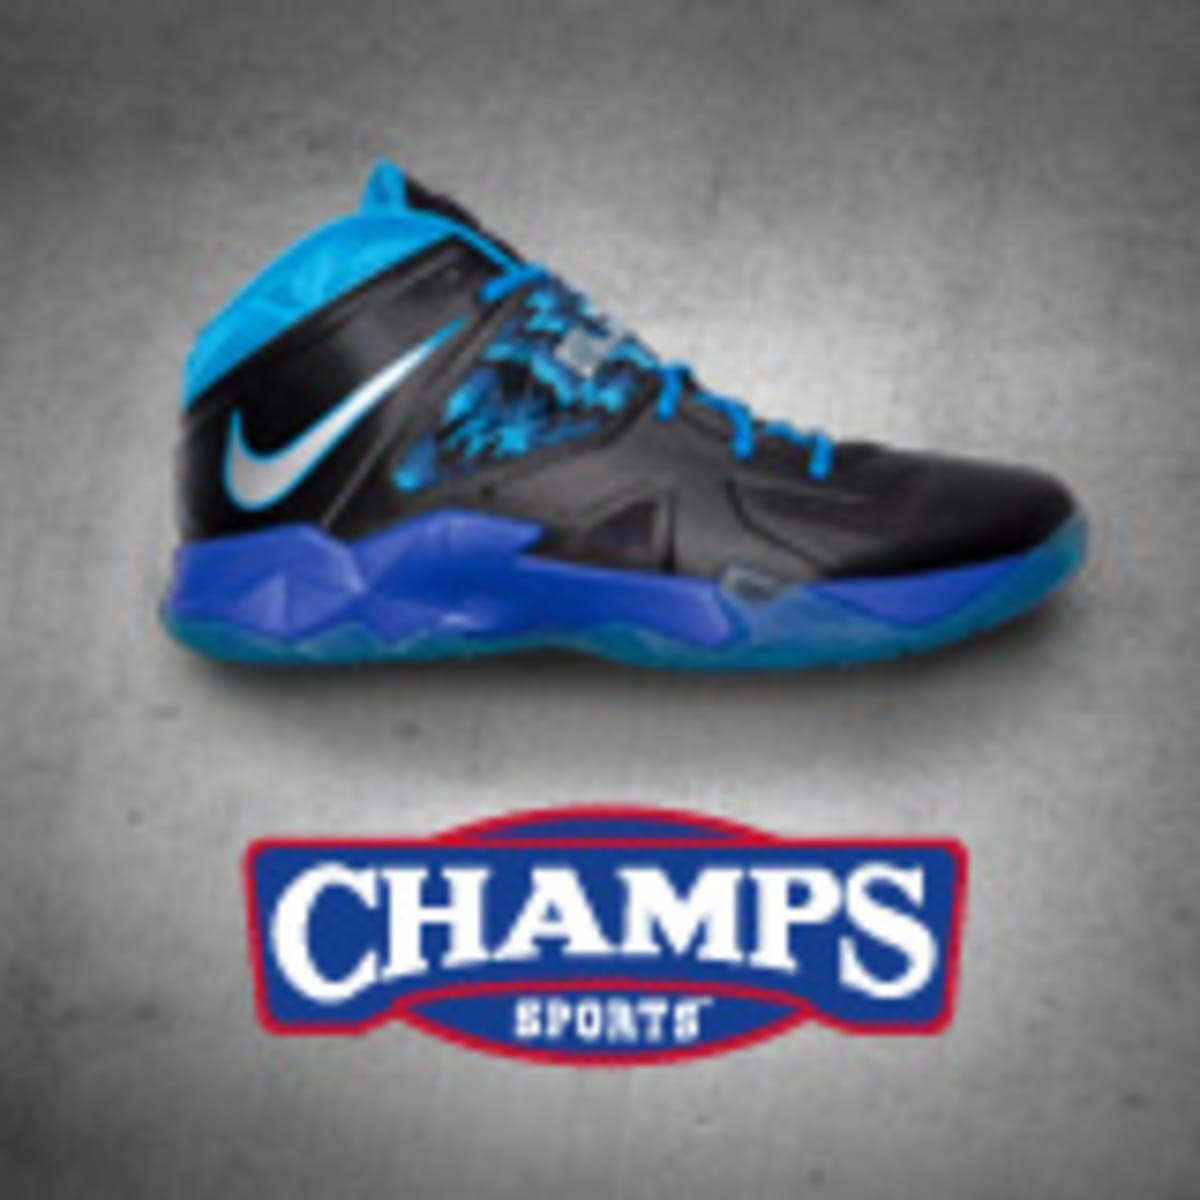 Champs Sports - Nike LeBron Solider 7